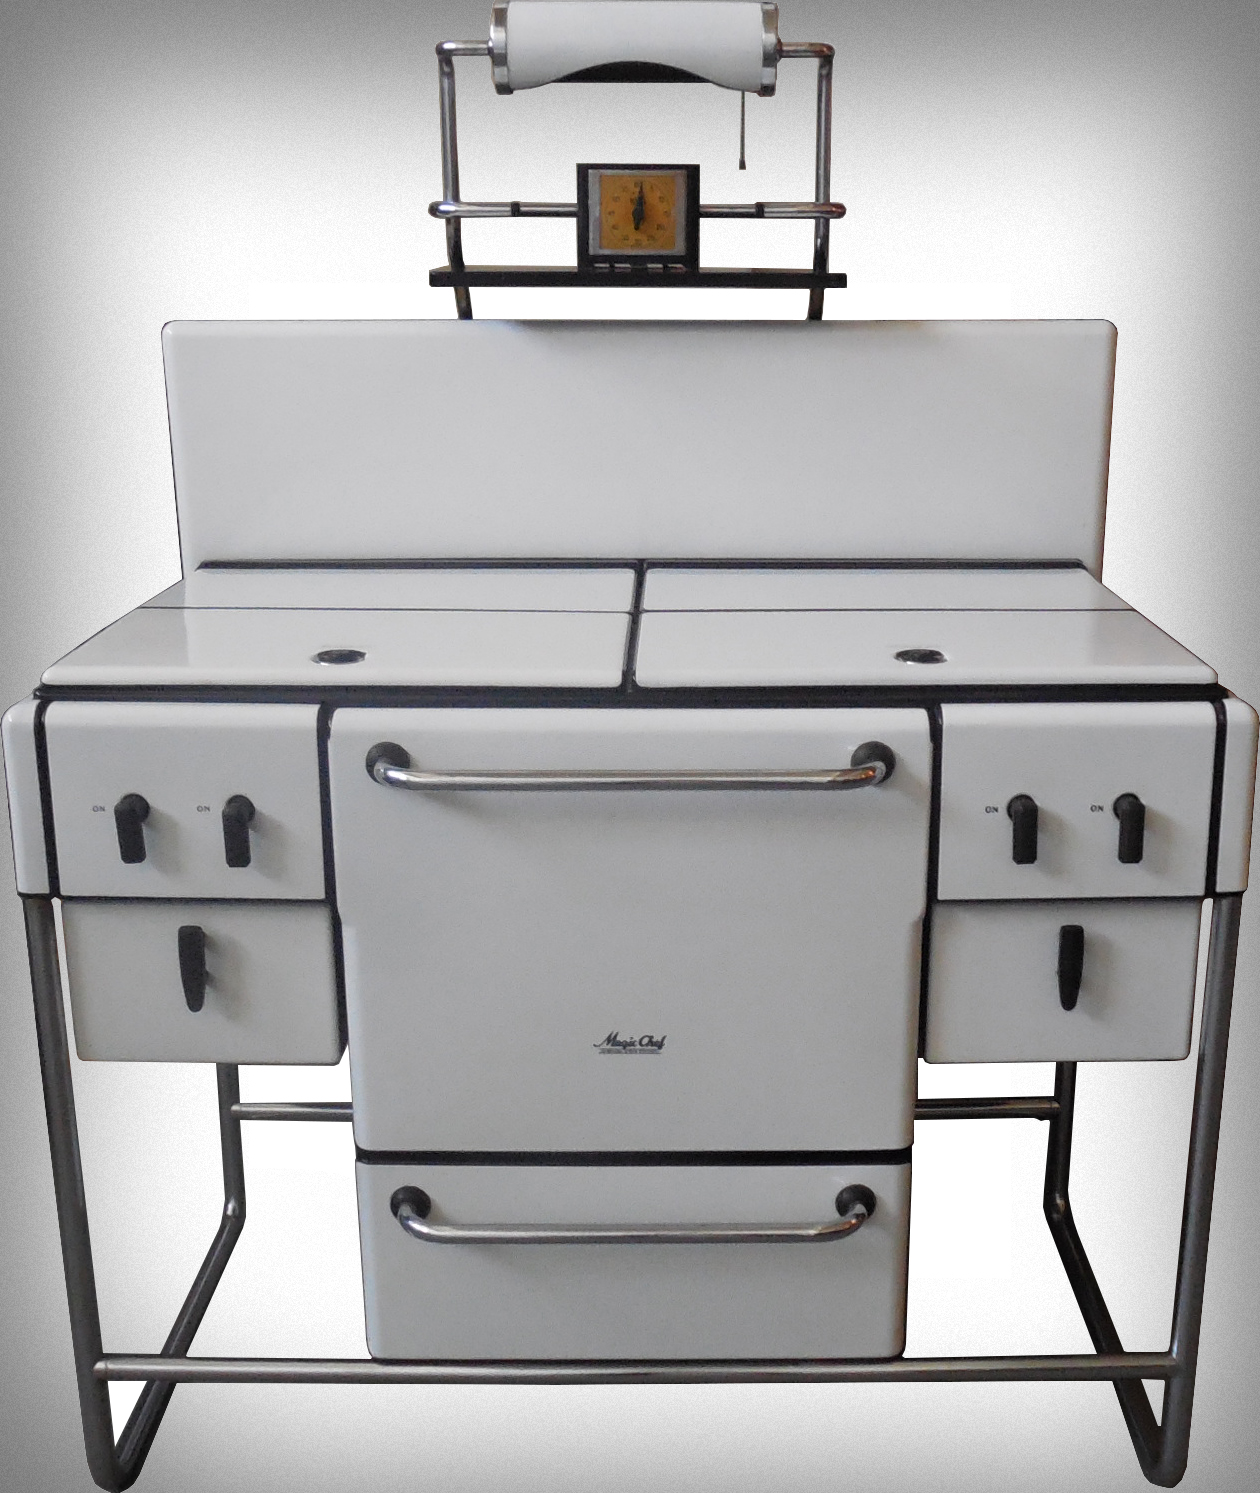 American Art Deco Stove And Oven Modernism